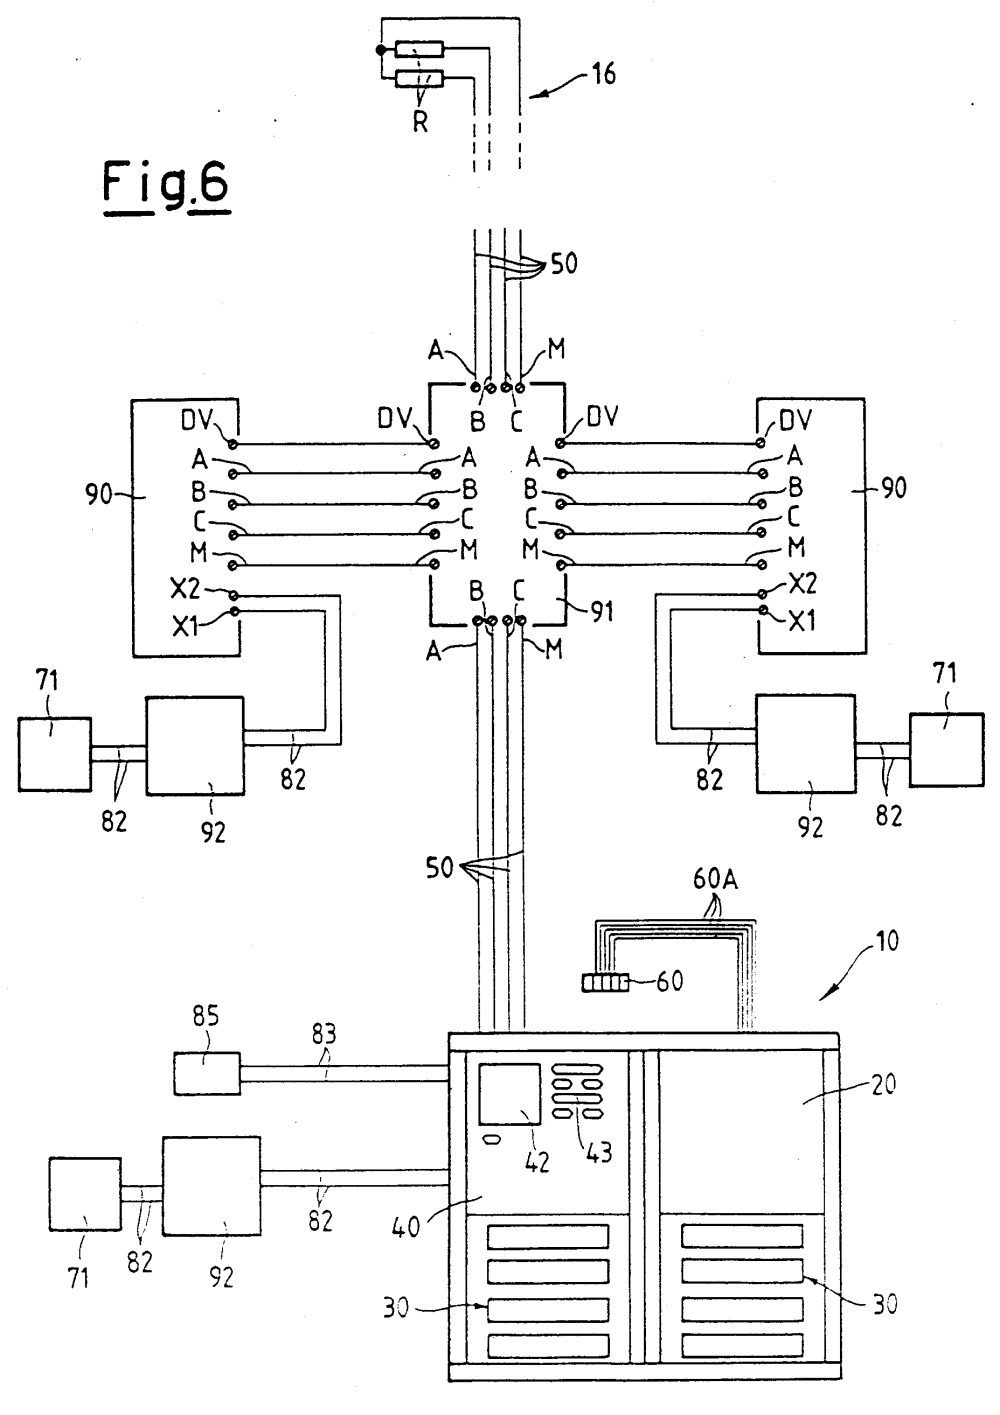 medium resolution of 00150001 patent ep0876044a2 electric connection system for intercom and comelit intercom wiring diagram at cita